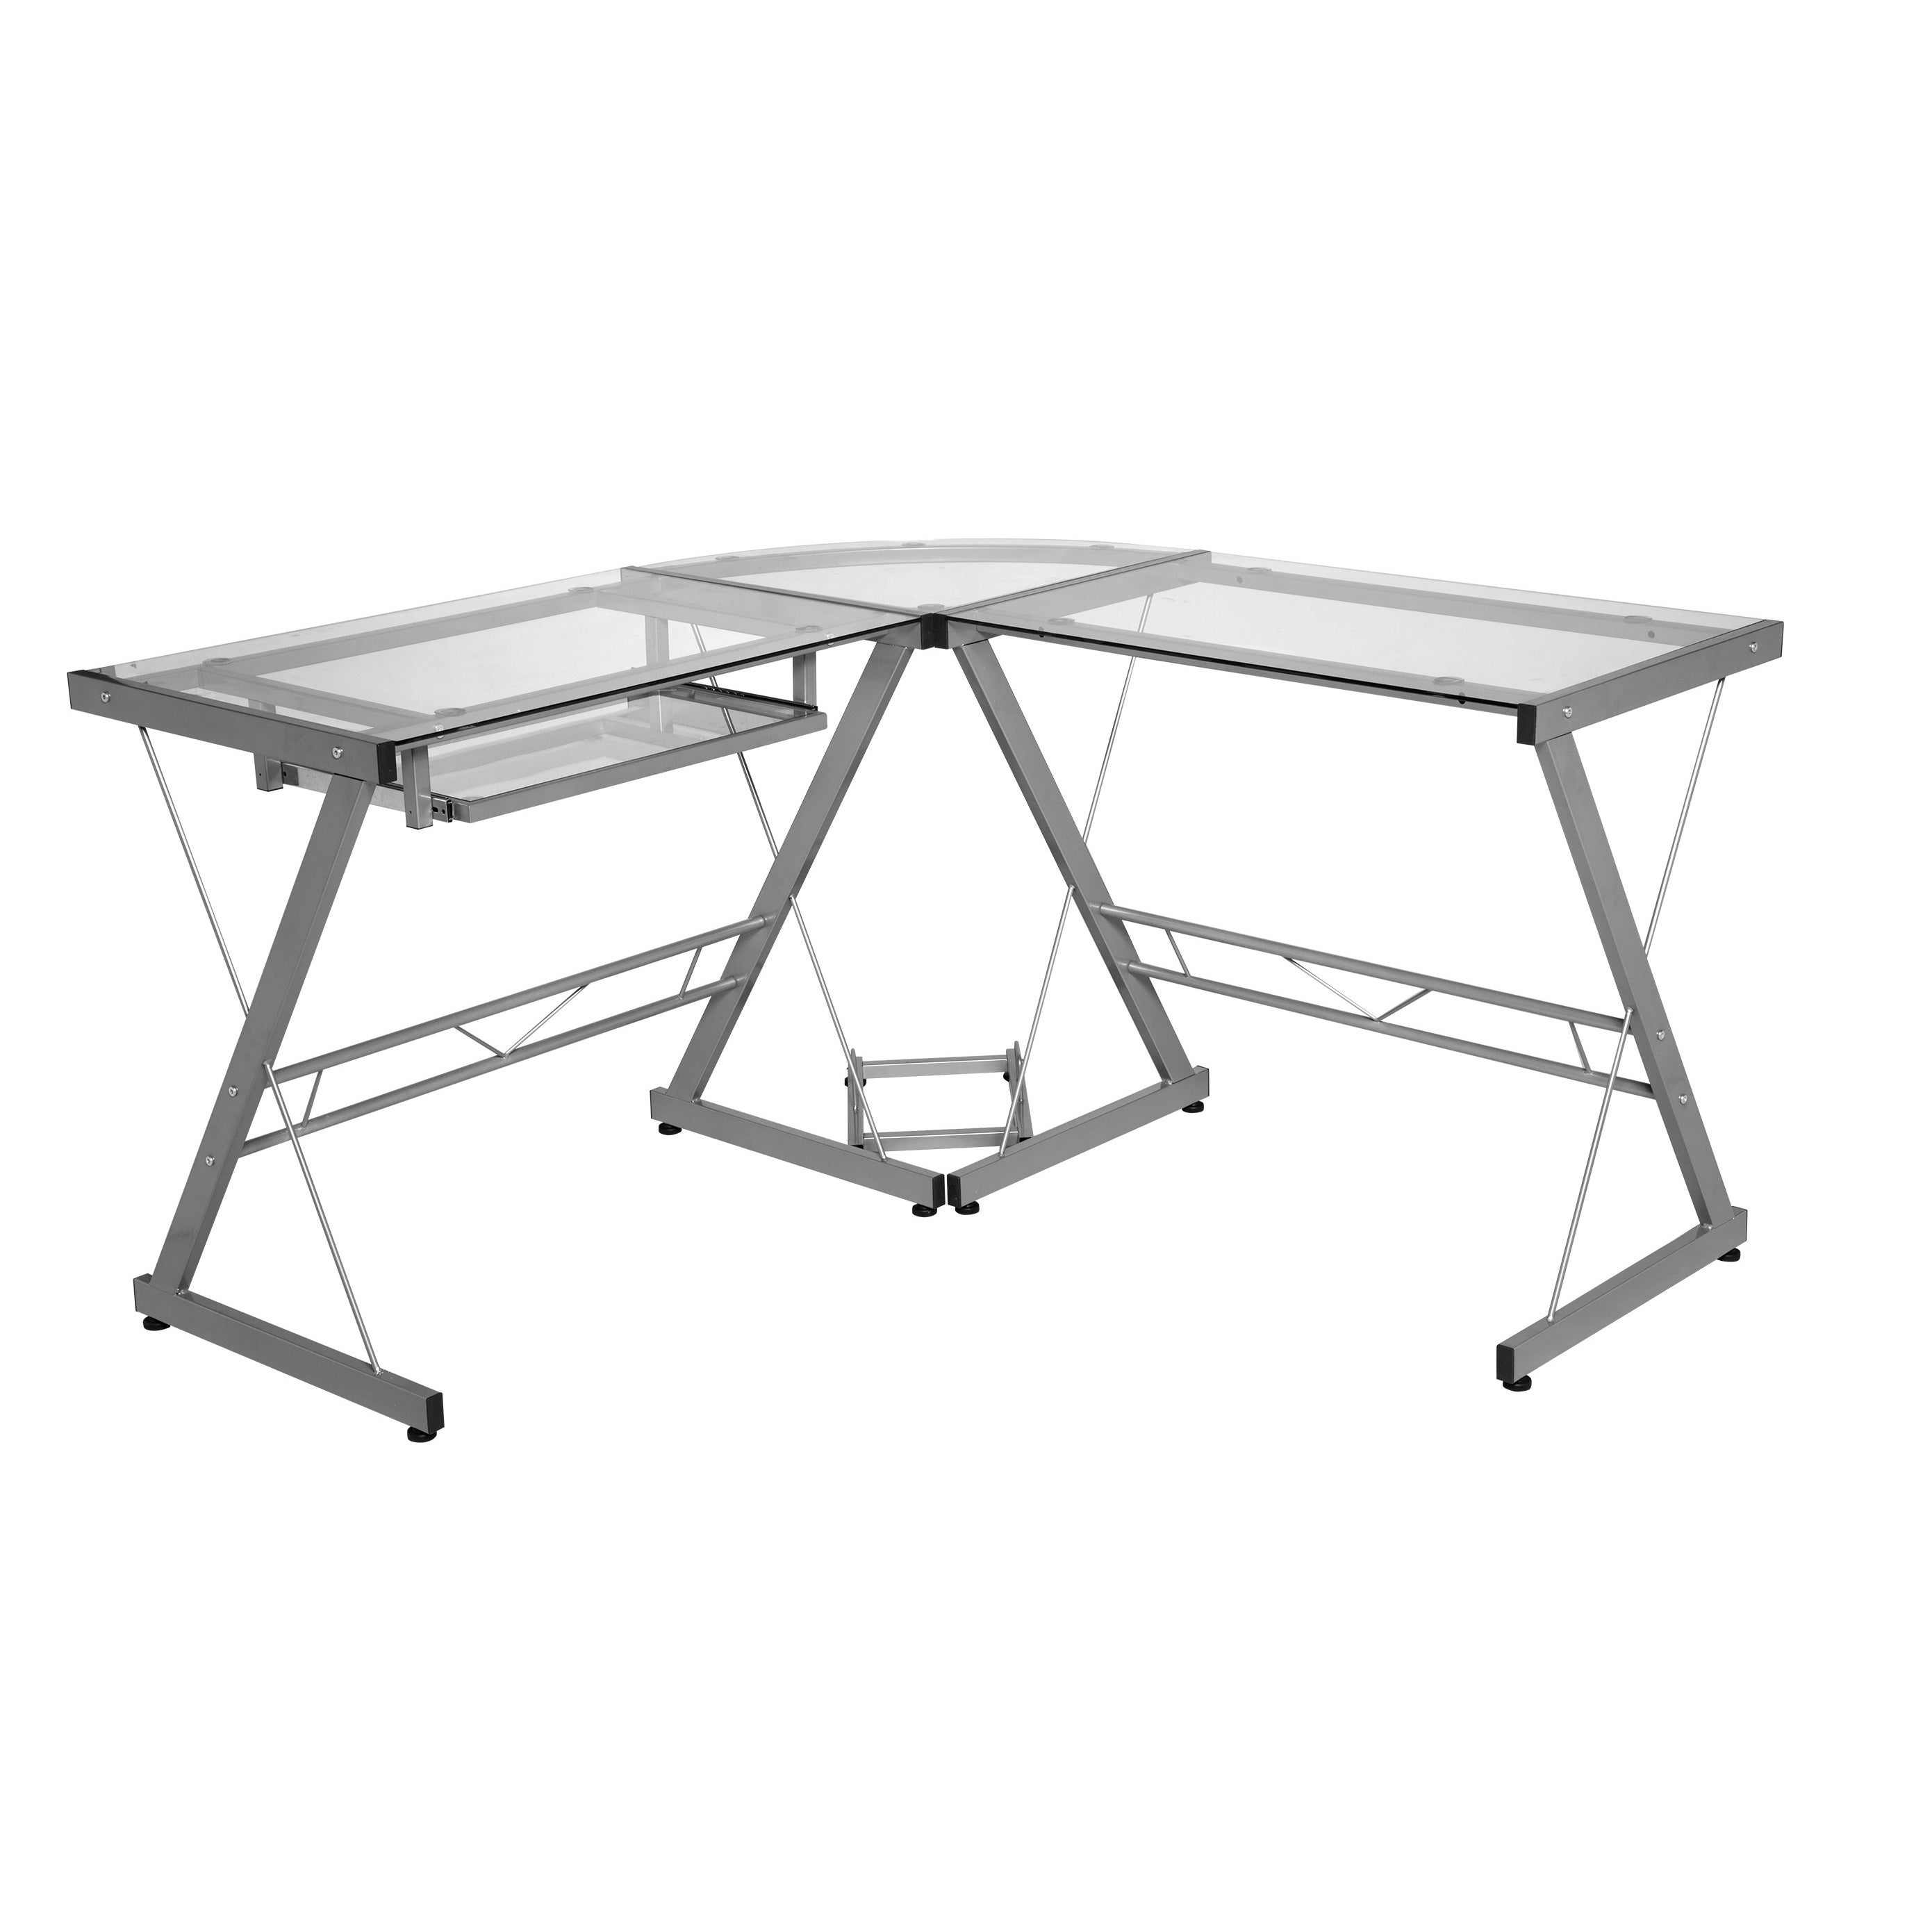 One Space Silver And Clear Glass L Shape Desk With Pull Out Keyboard Tray